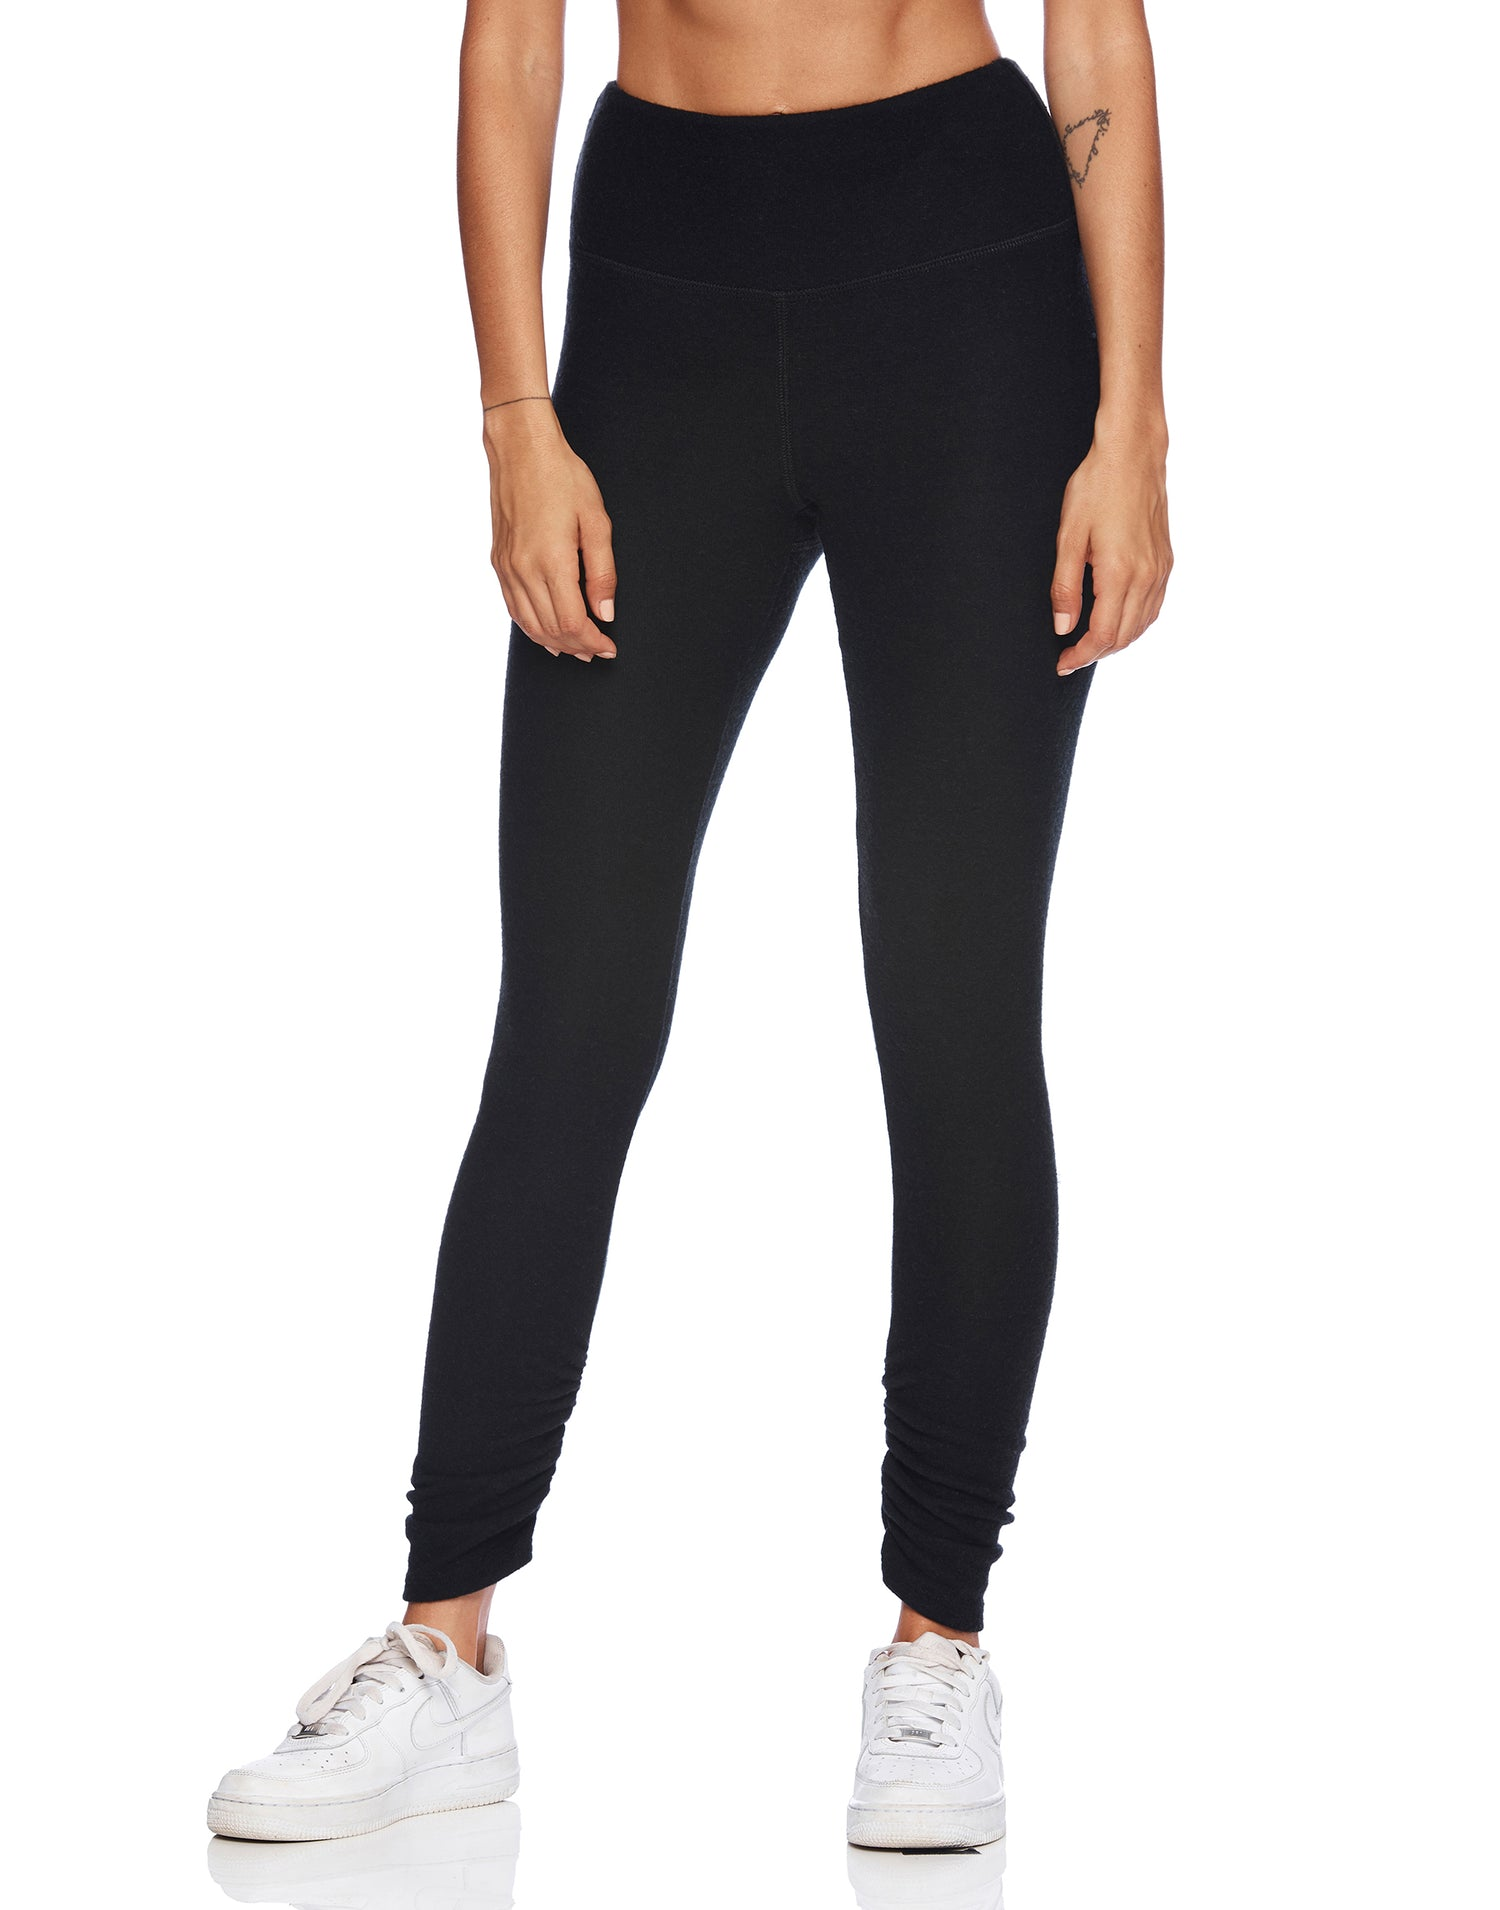 Josie Legging in Black with Ruching at the Bottom Leg - alternate front view